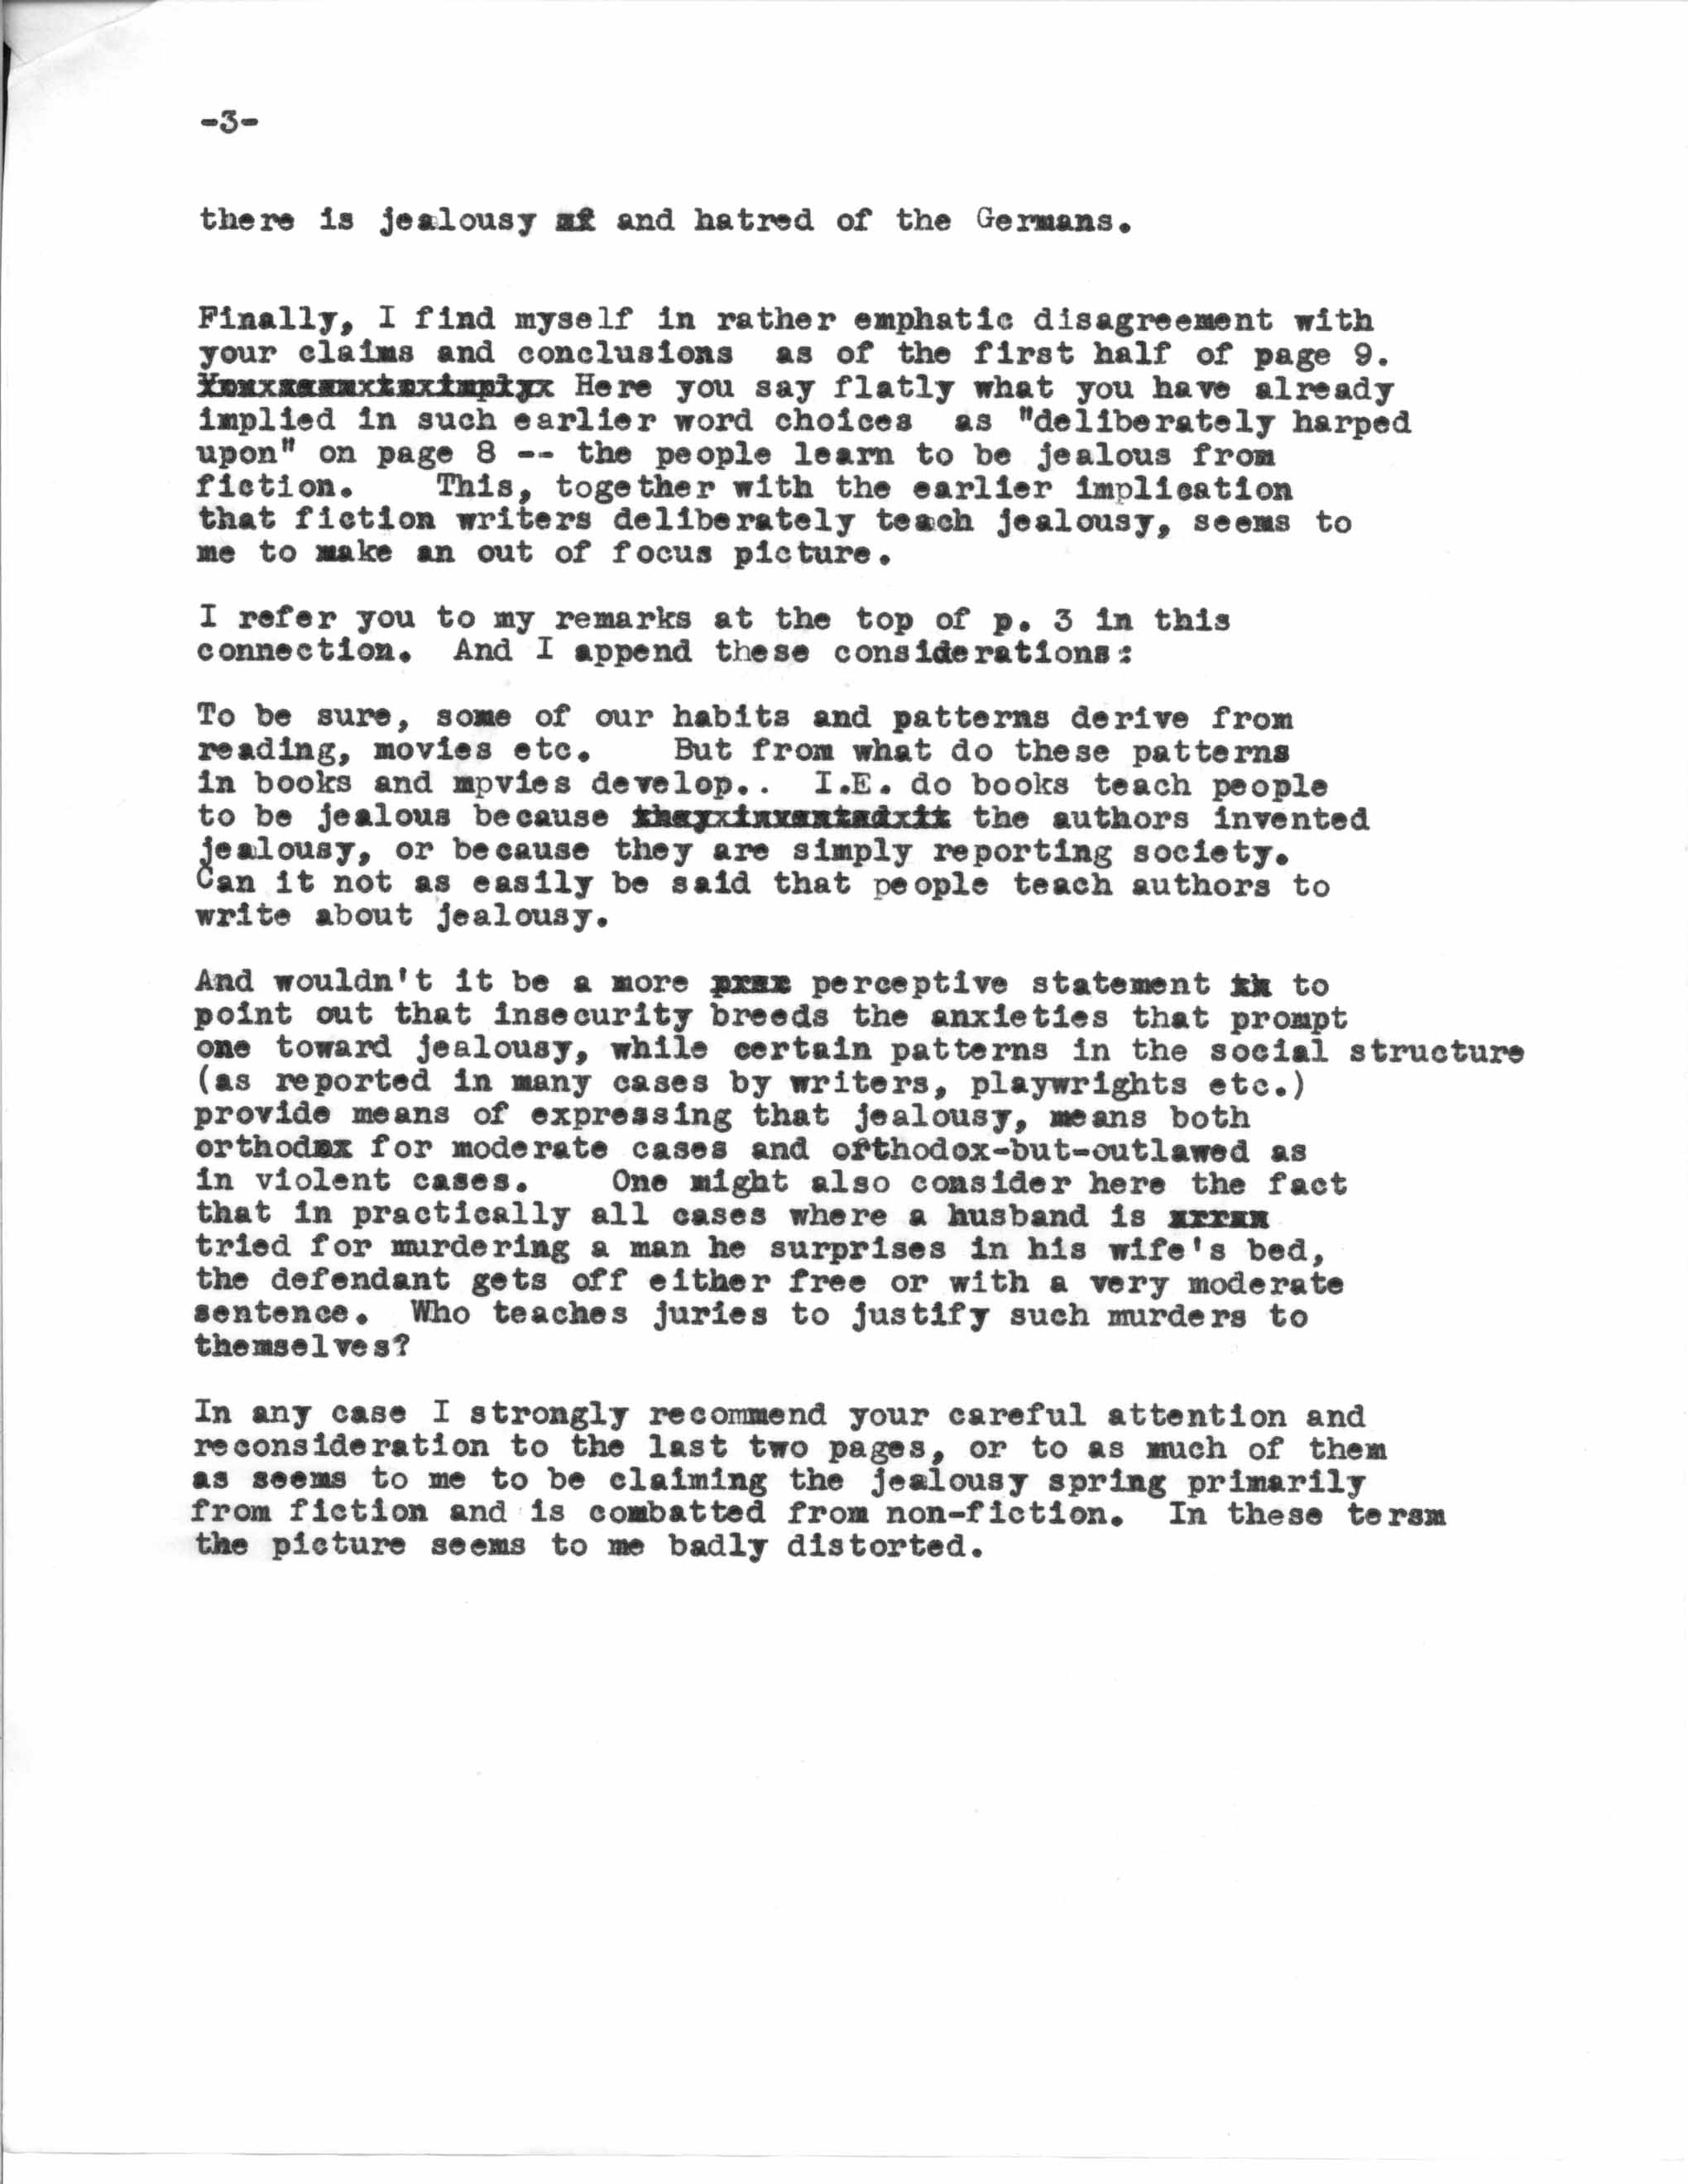 albert ellis essay Albert ellis' abc model of rational-emotive theory this 12 page paper provides an overview of this issue alfred ellis considered the value of defining links between the philosophical and the therapeutic through an understanding of what he described as rational-emotive theory.